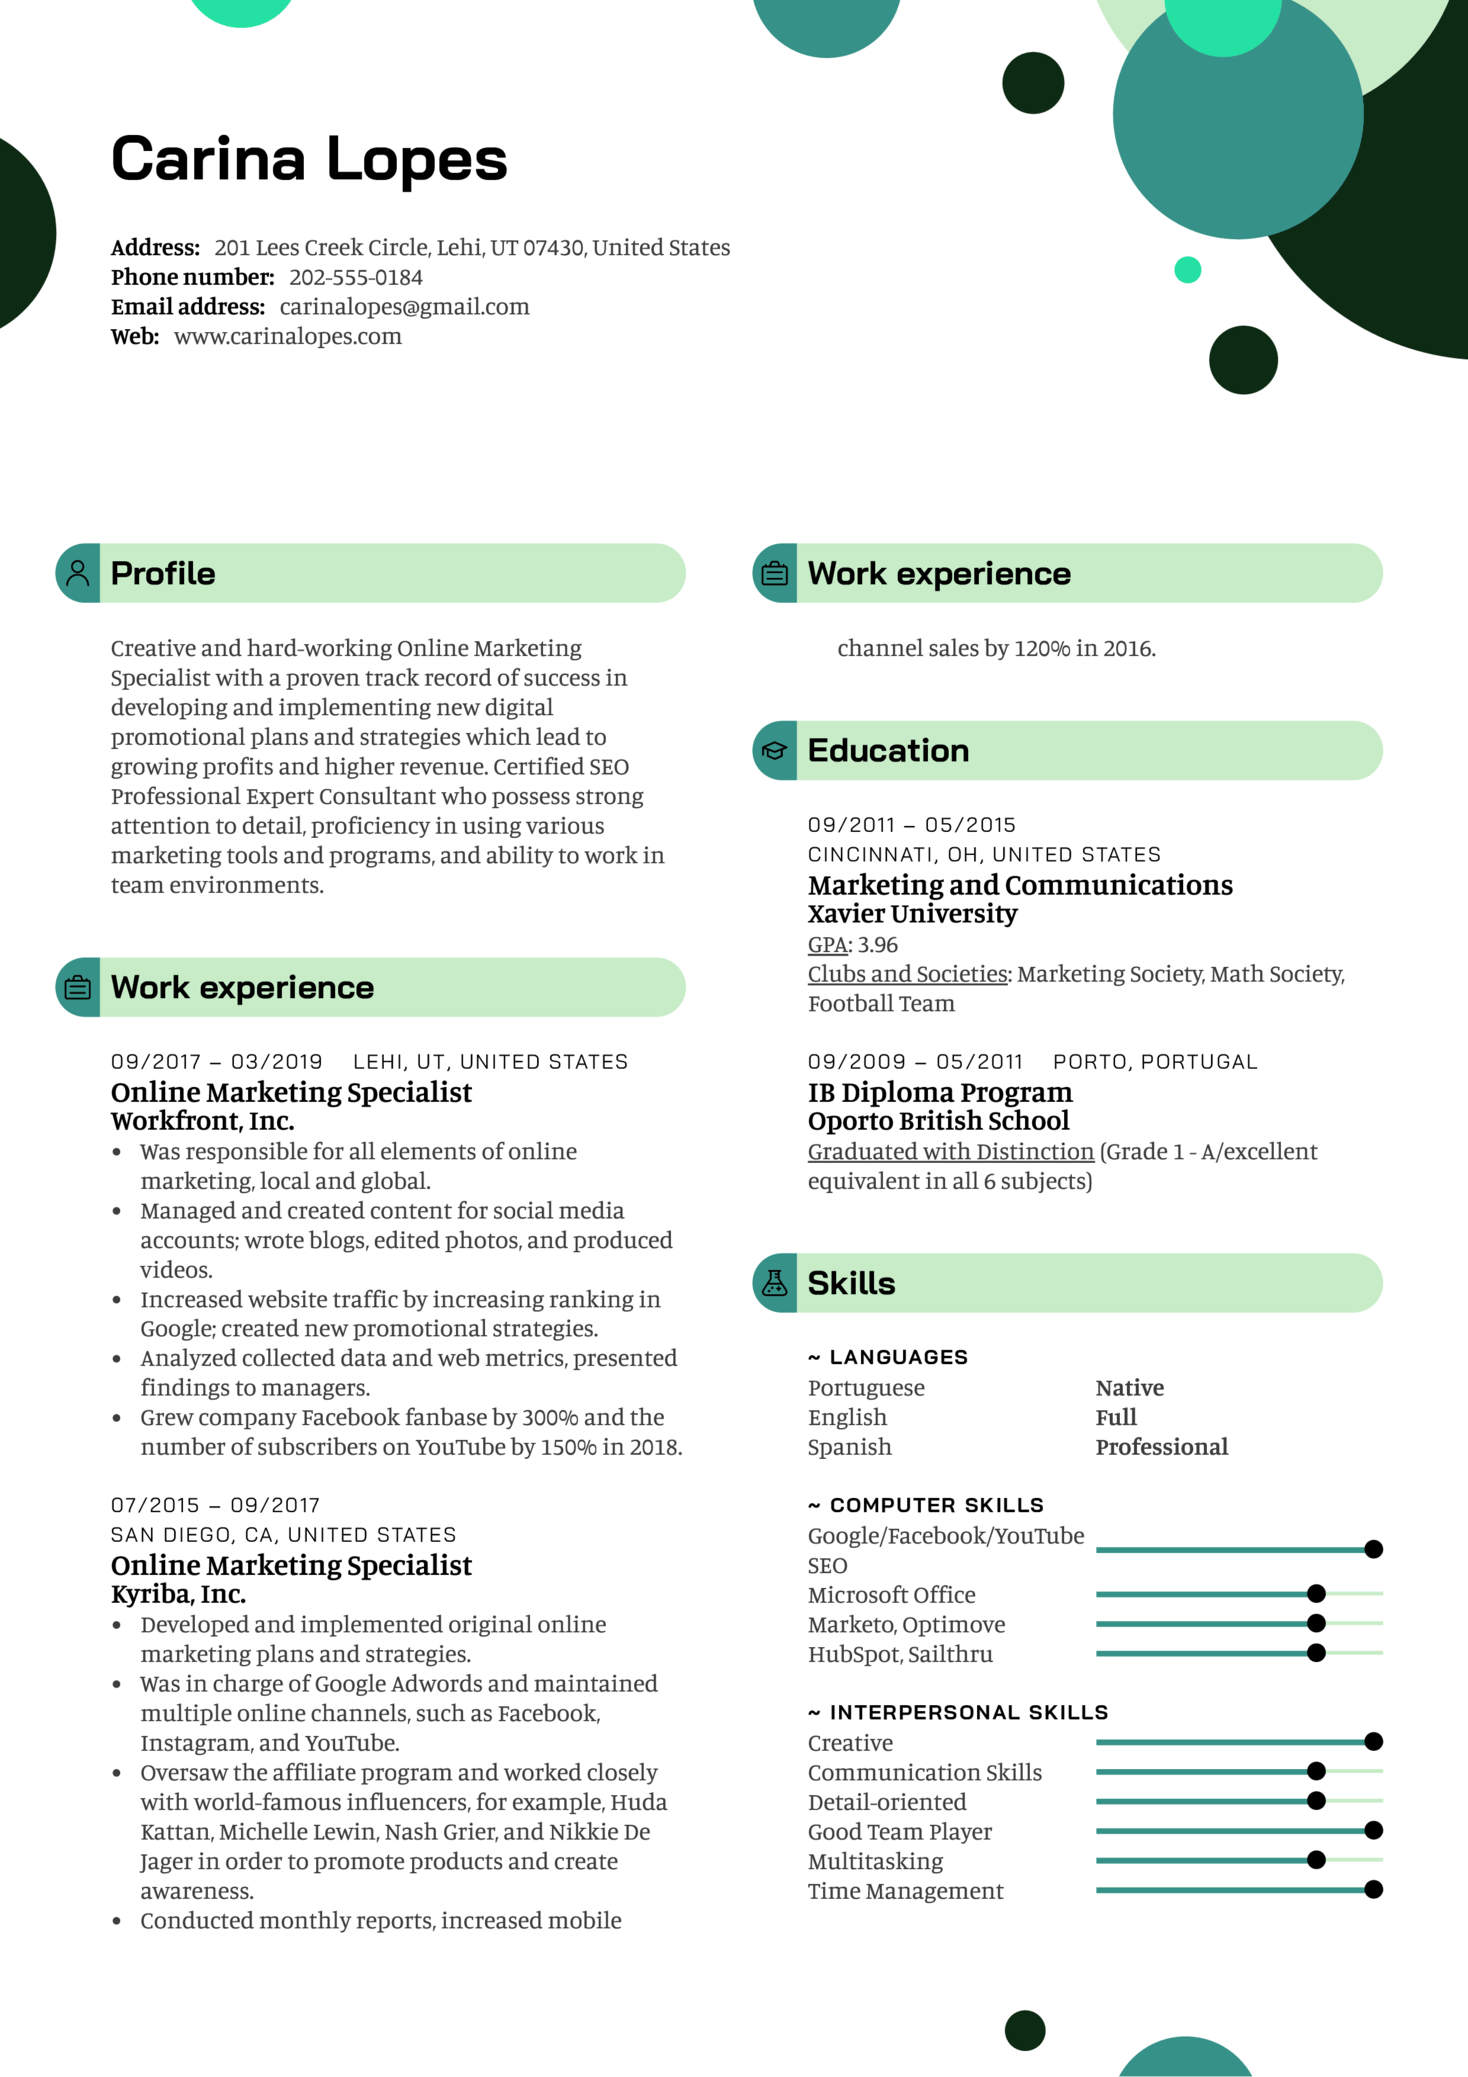 Resume Examples By Real People Online Marketing Specialist